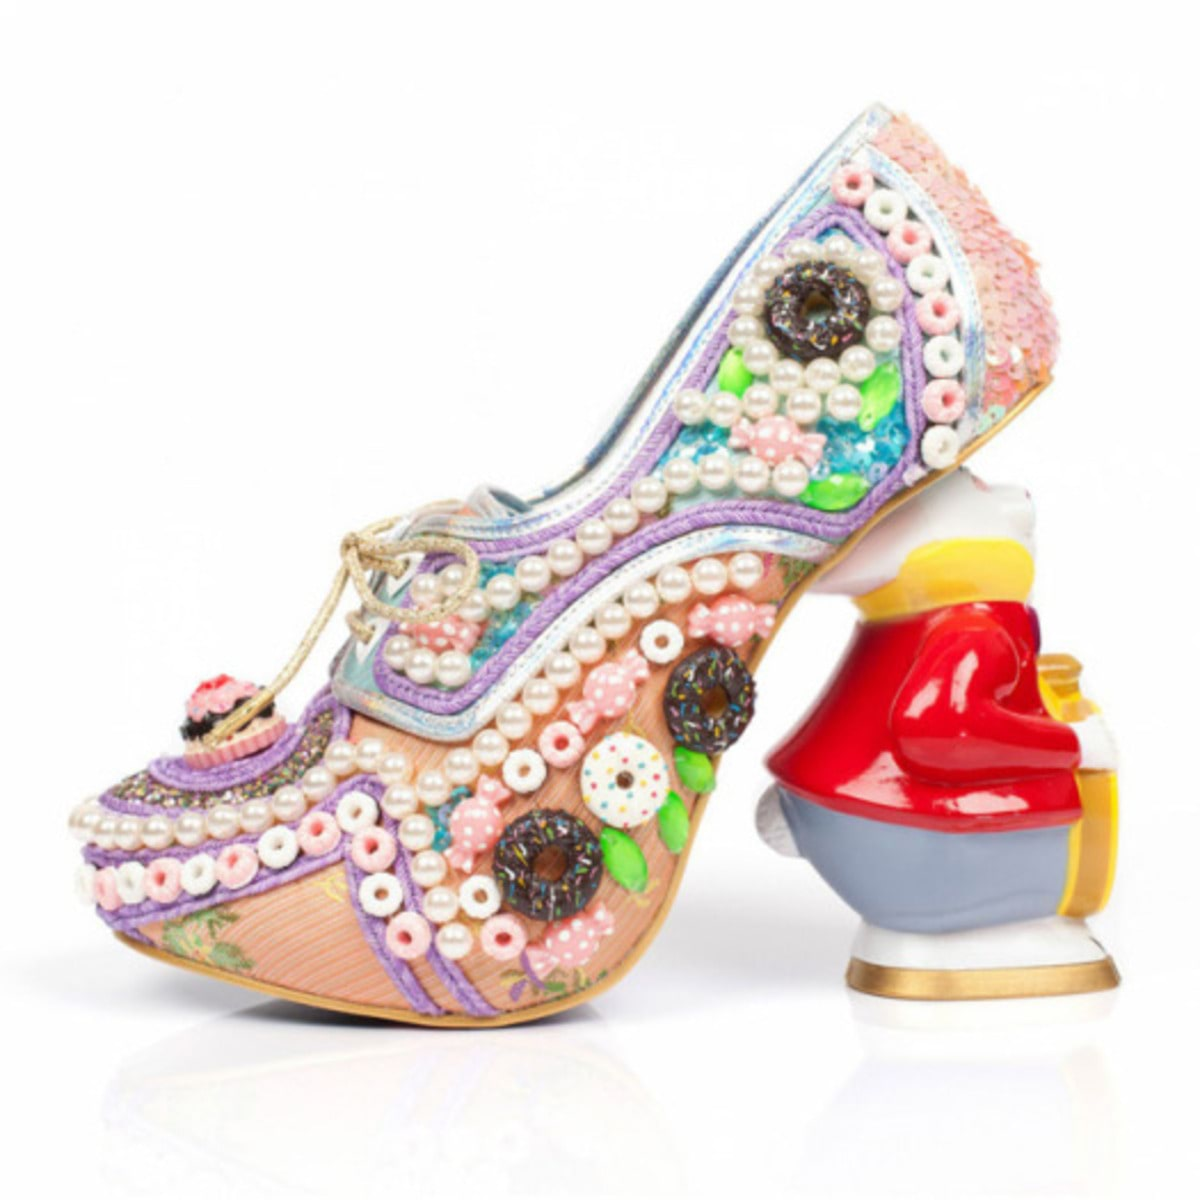 alice-in-wonderland-irregular-choice-7